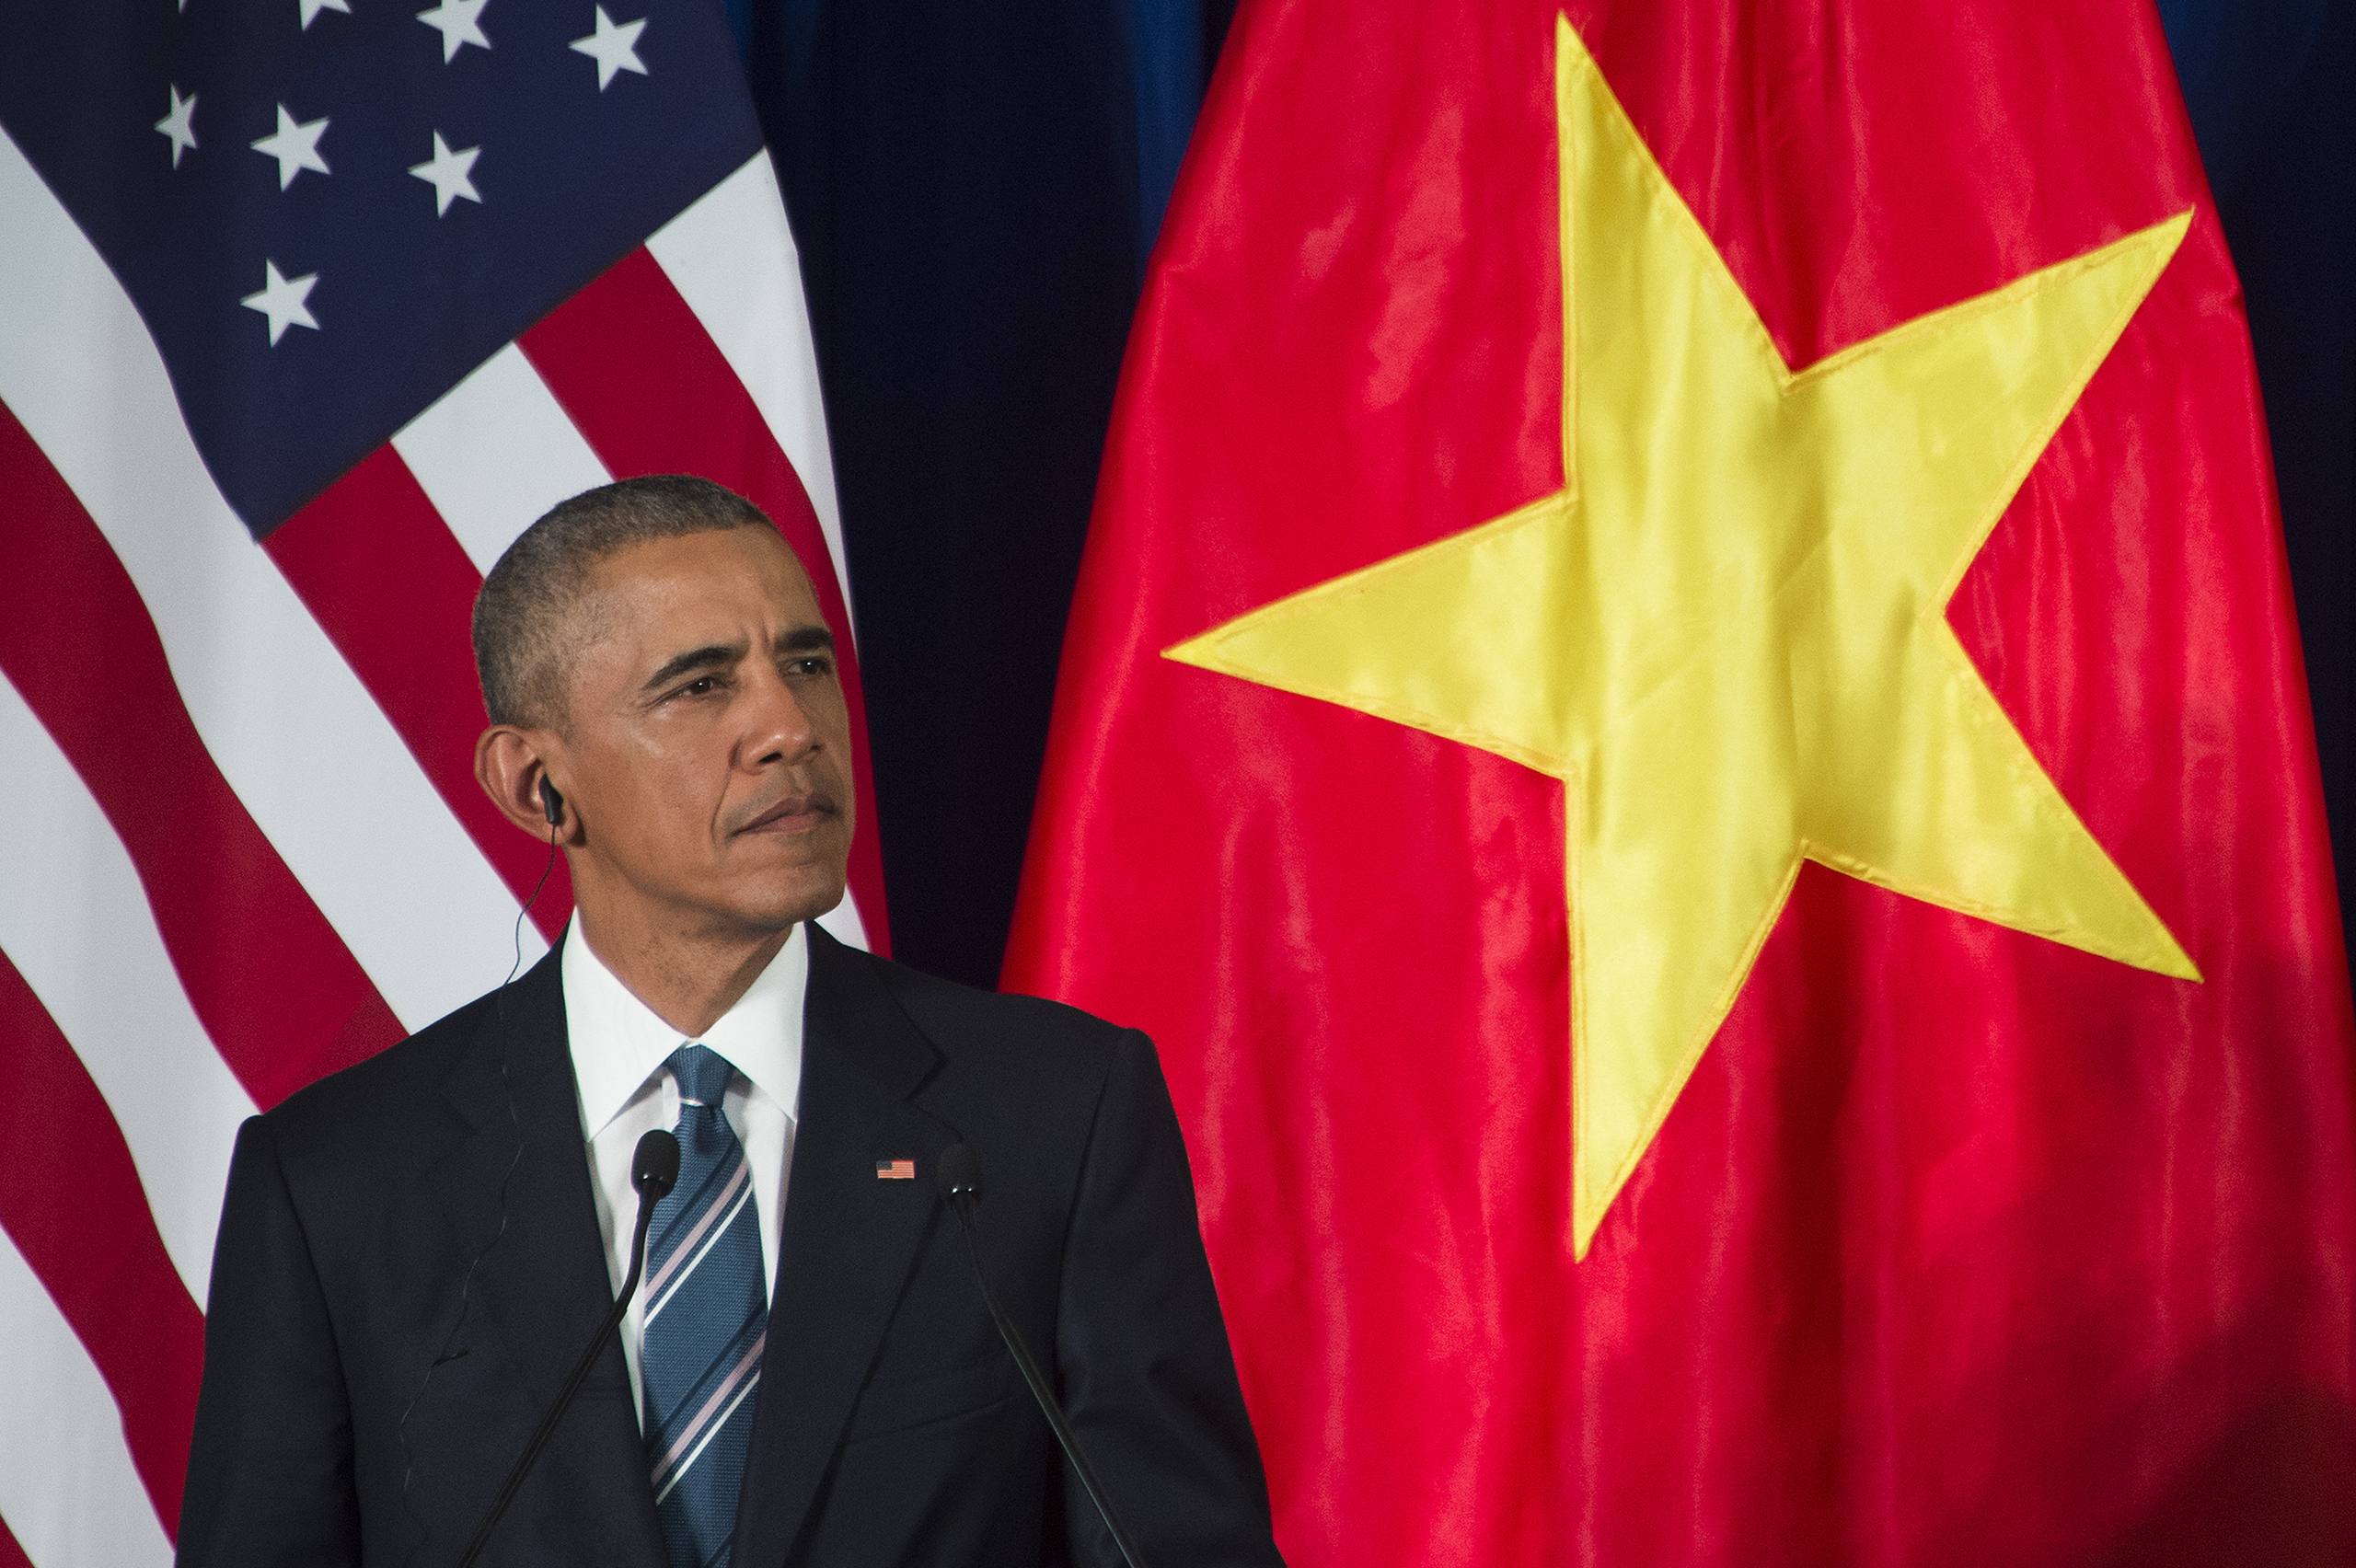 Barack Obama speaks during a joint press conference in Hanoi on May 23, 2016.